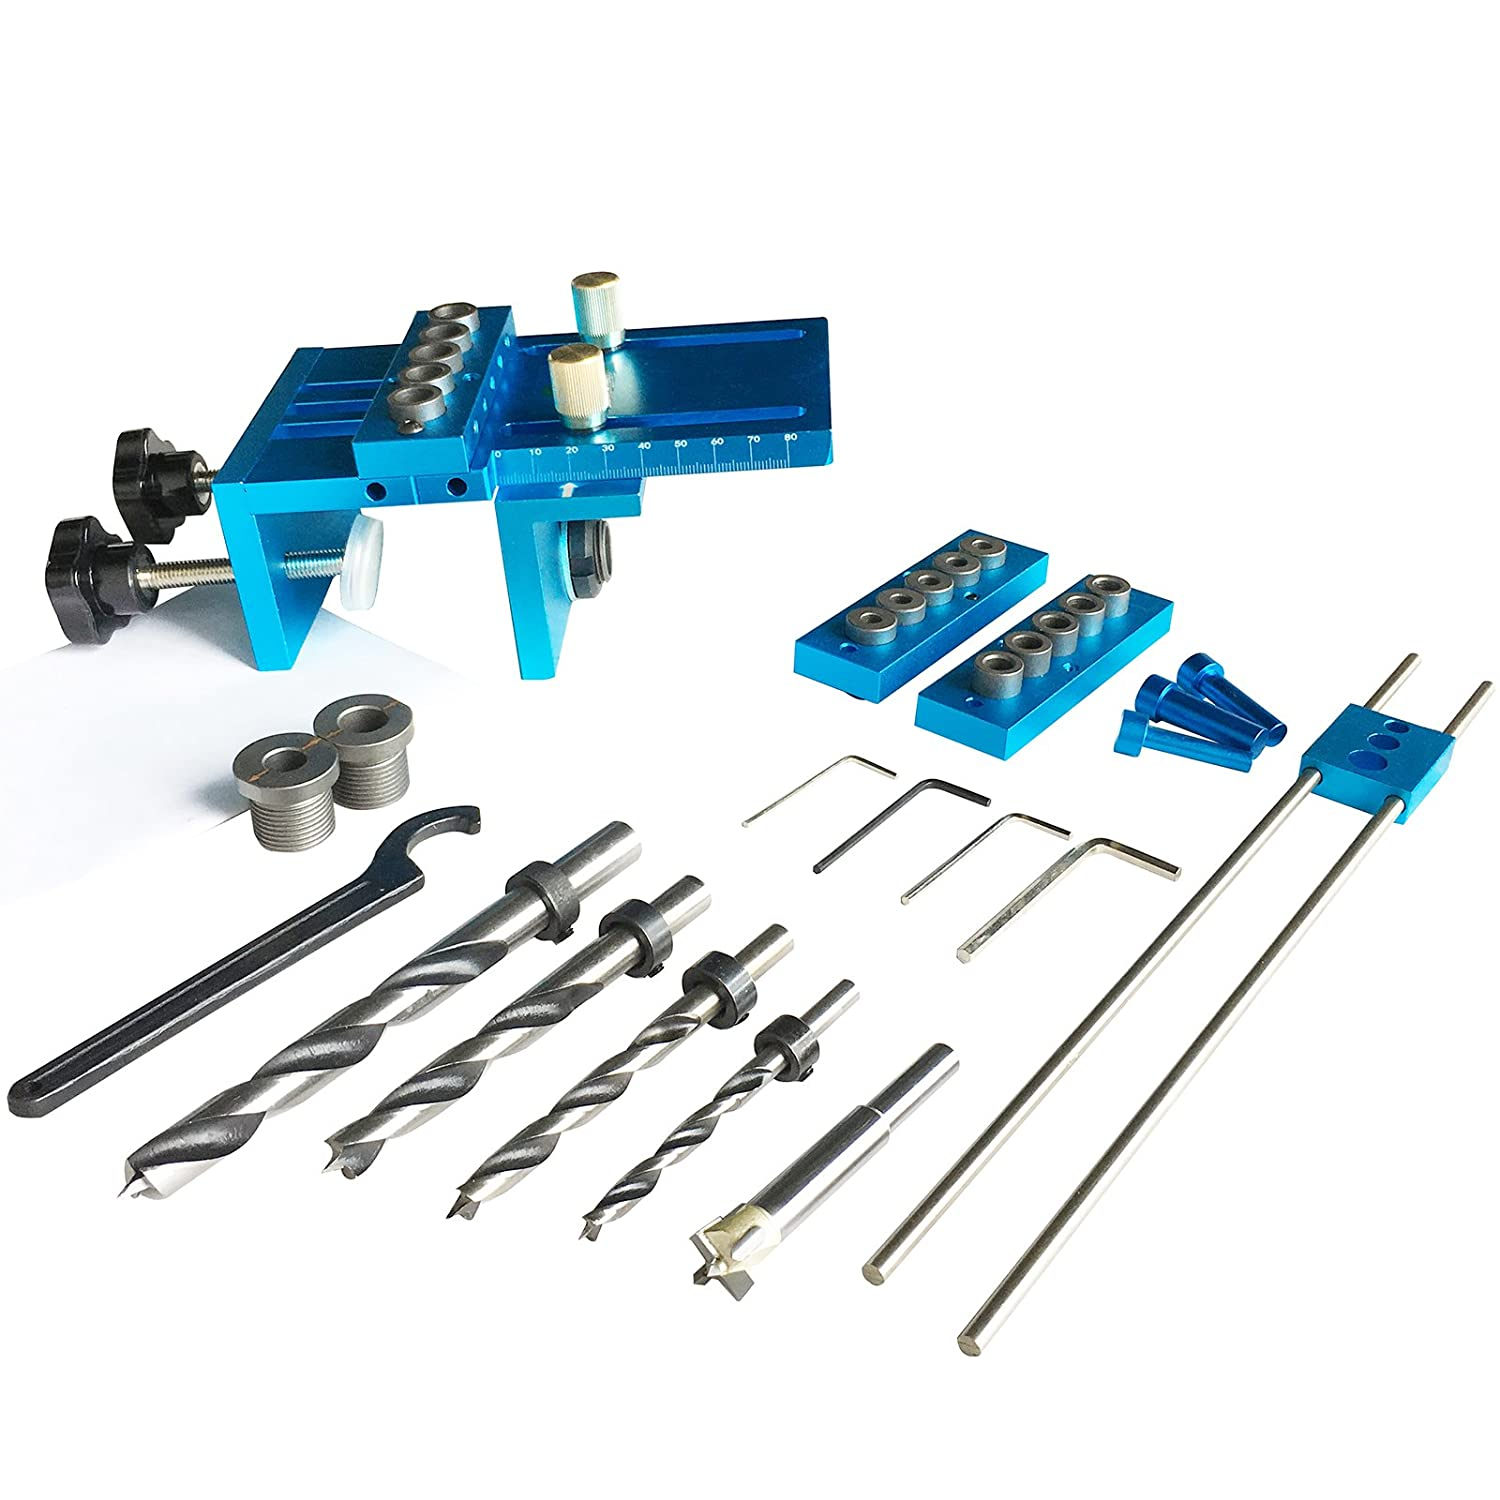 Universal High Precision Jig Dowel Cam Jig Minifix Jig Kit, PANGOLIN Wood Hole Drilling Guide Woodworking Position for DIY Wood working,Furniture Repair or handyman,and Keep with 5 Year Warranty.